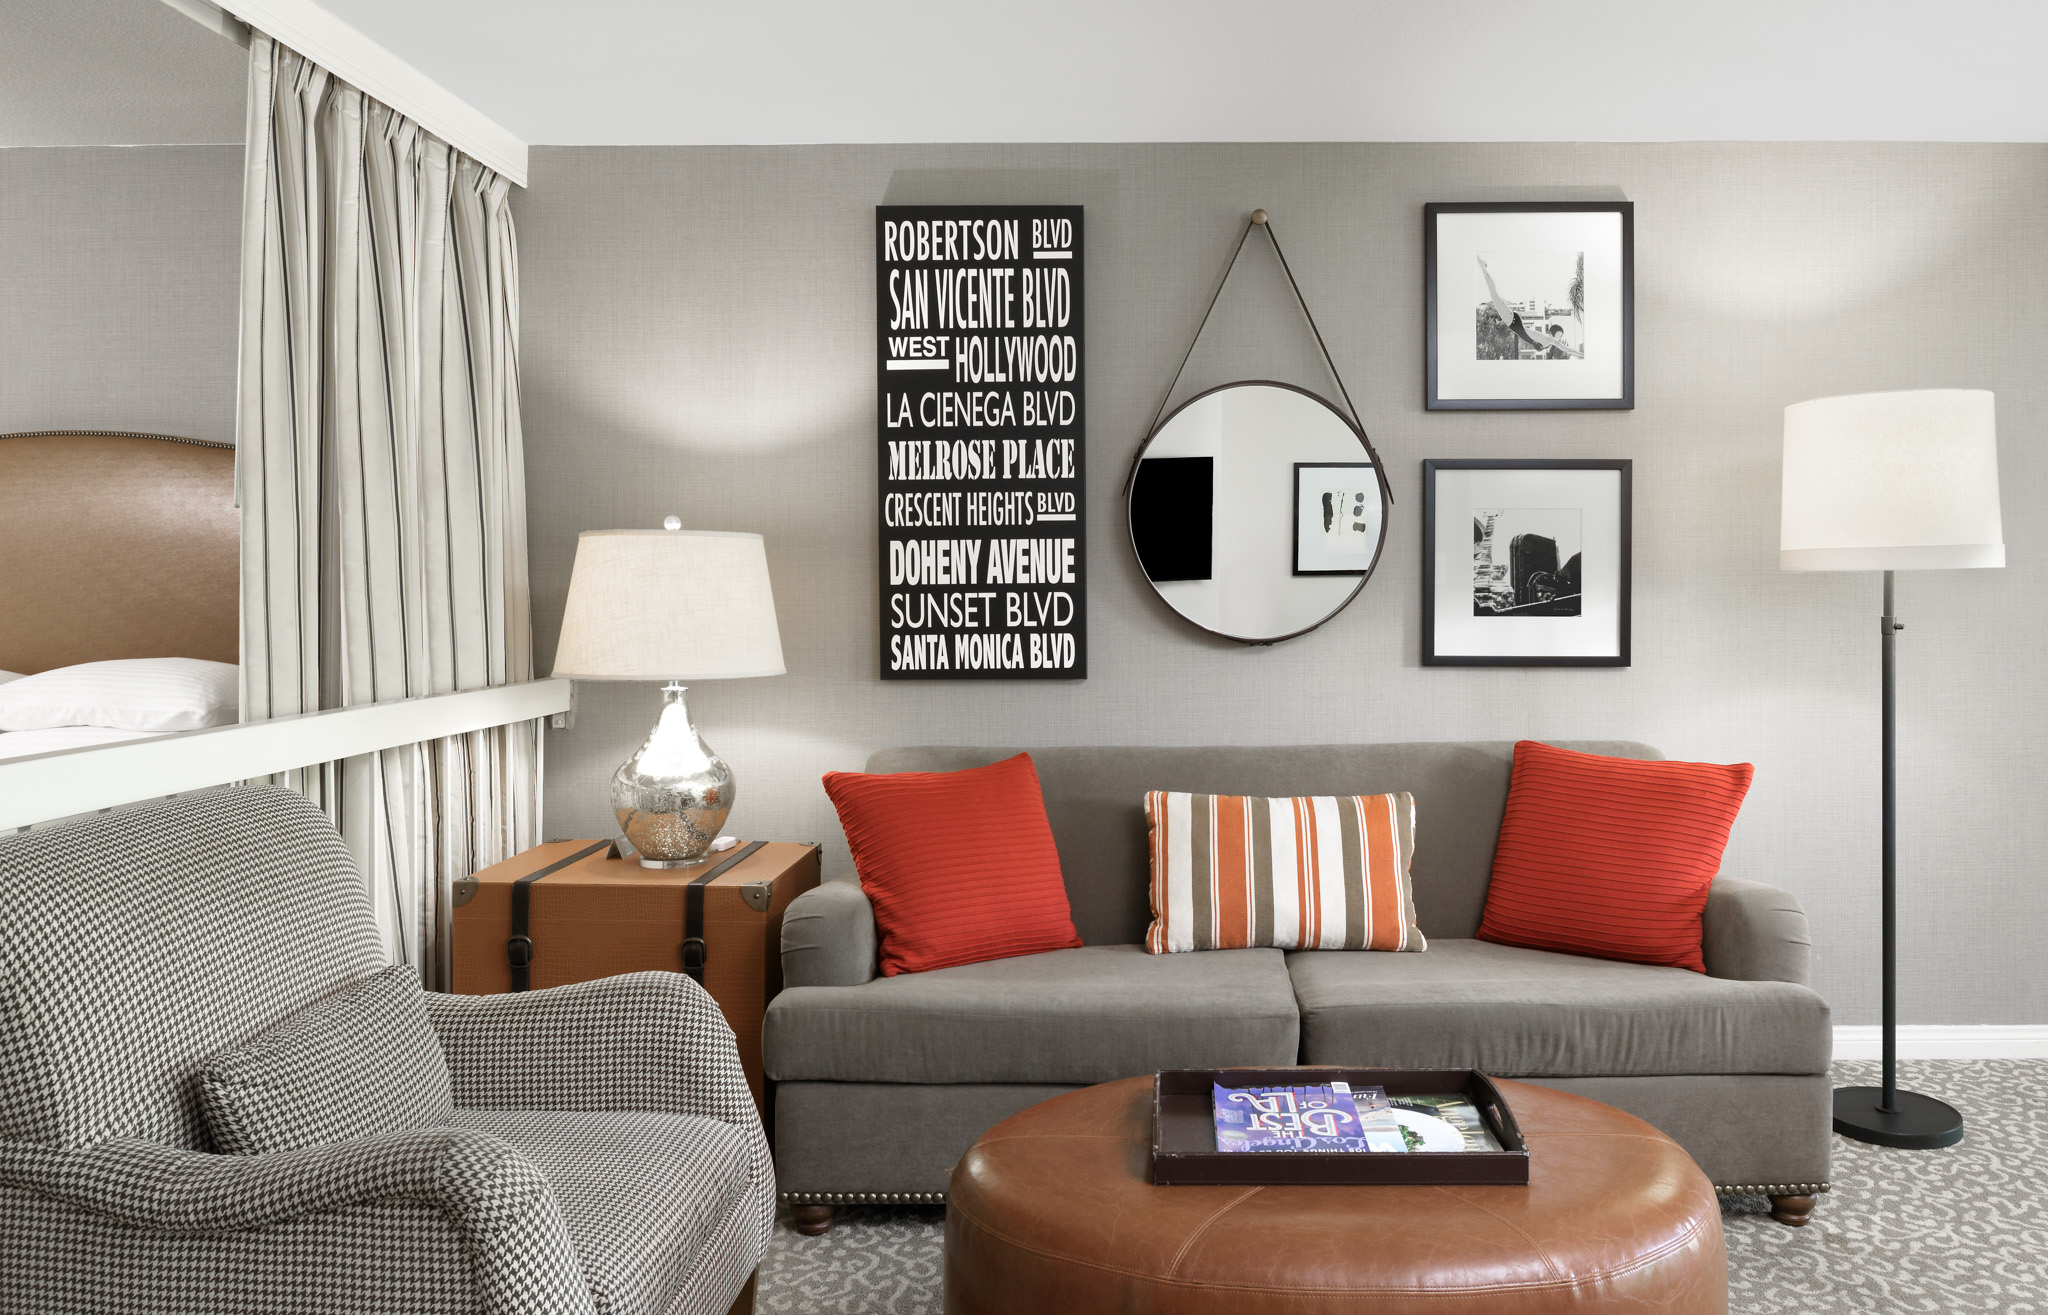 A suite living room with grey seating, orange throw pillows.